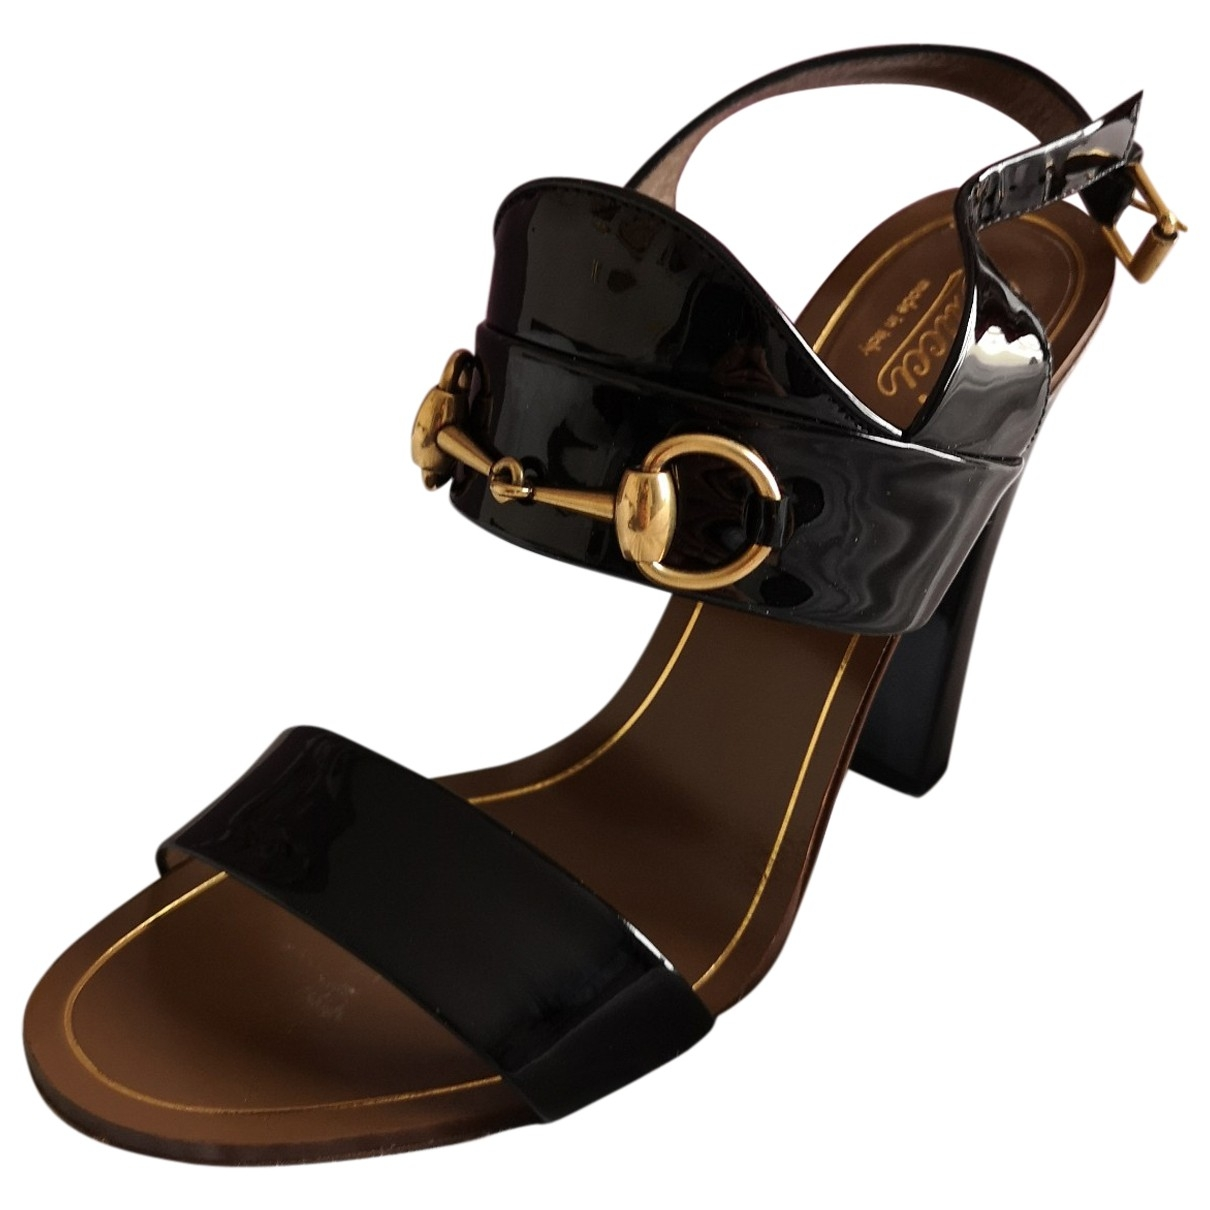 Gucci \N Black Patent leather Sandals for Women 38 EU